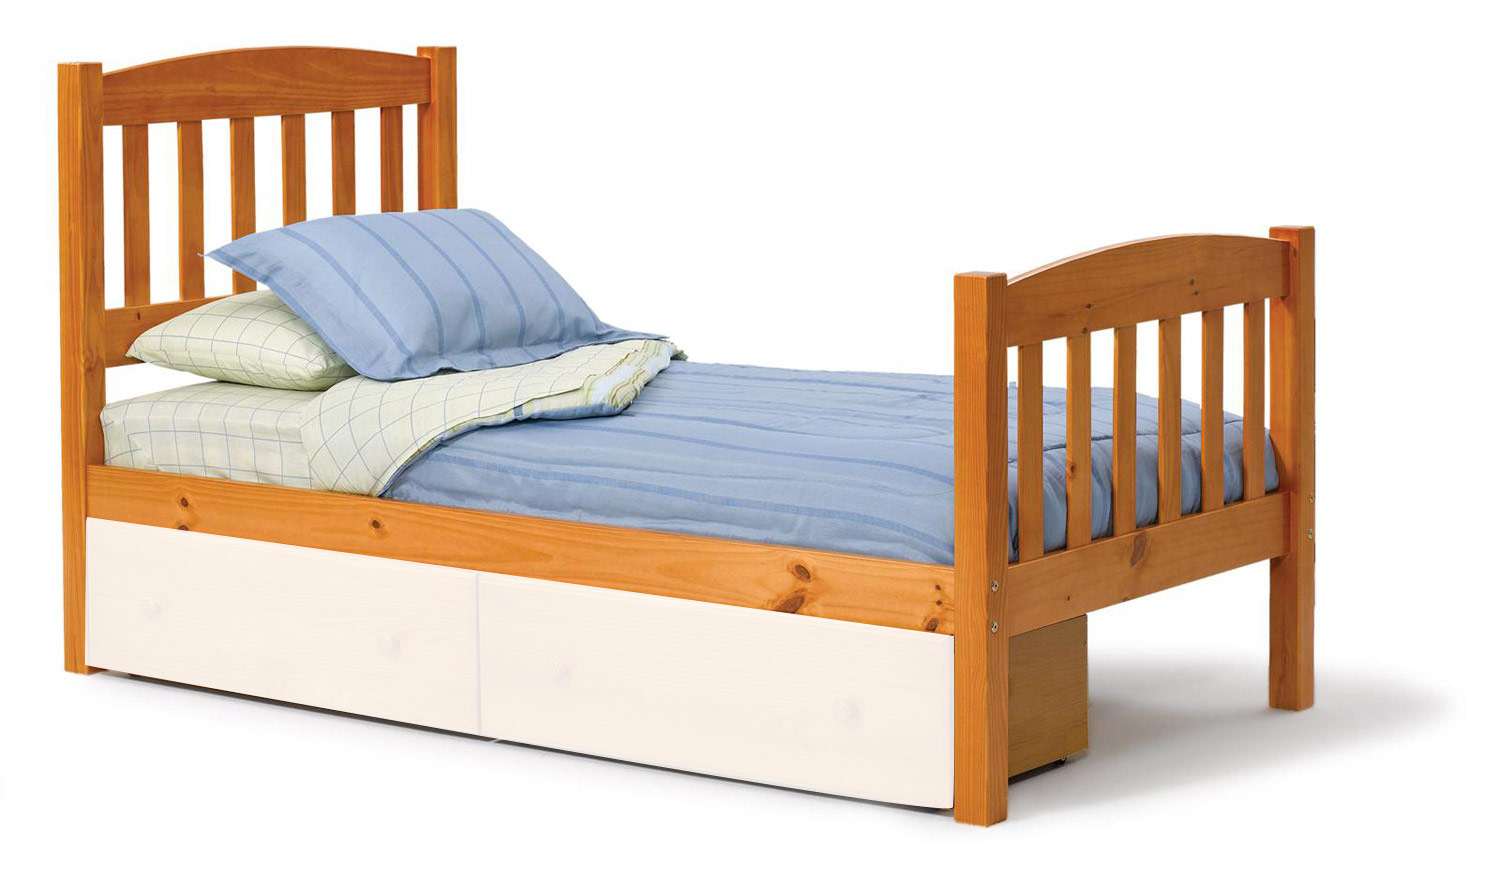 Chelsea home furniture 3643330 twin mission bed honey for Furniture 4 less salinas